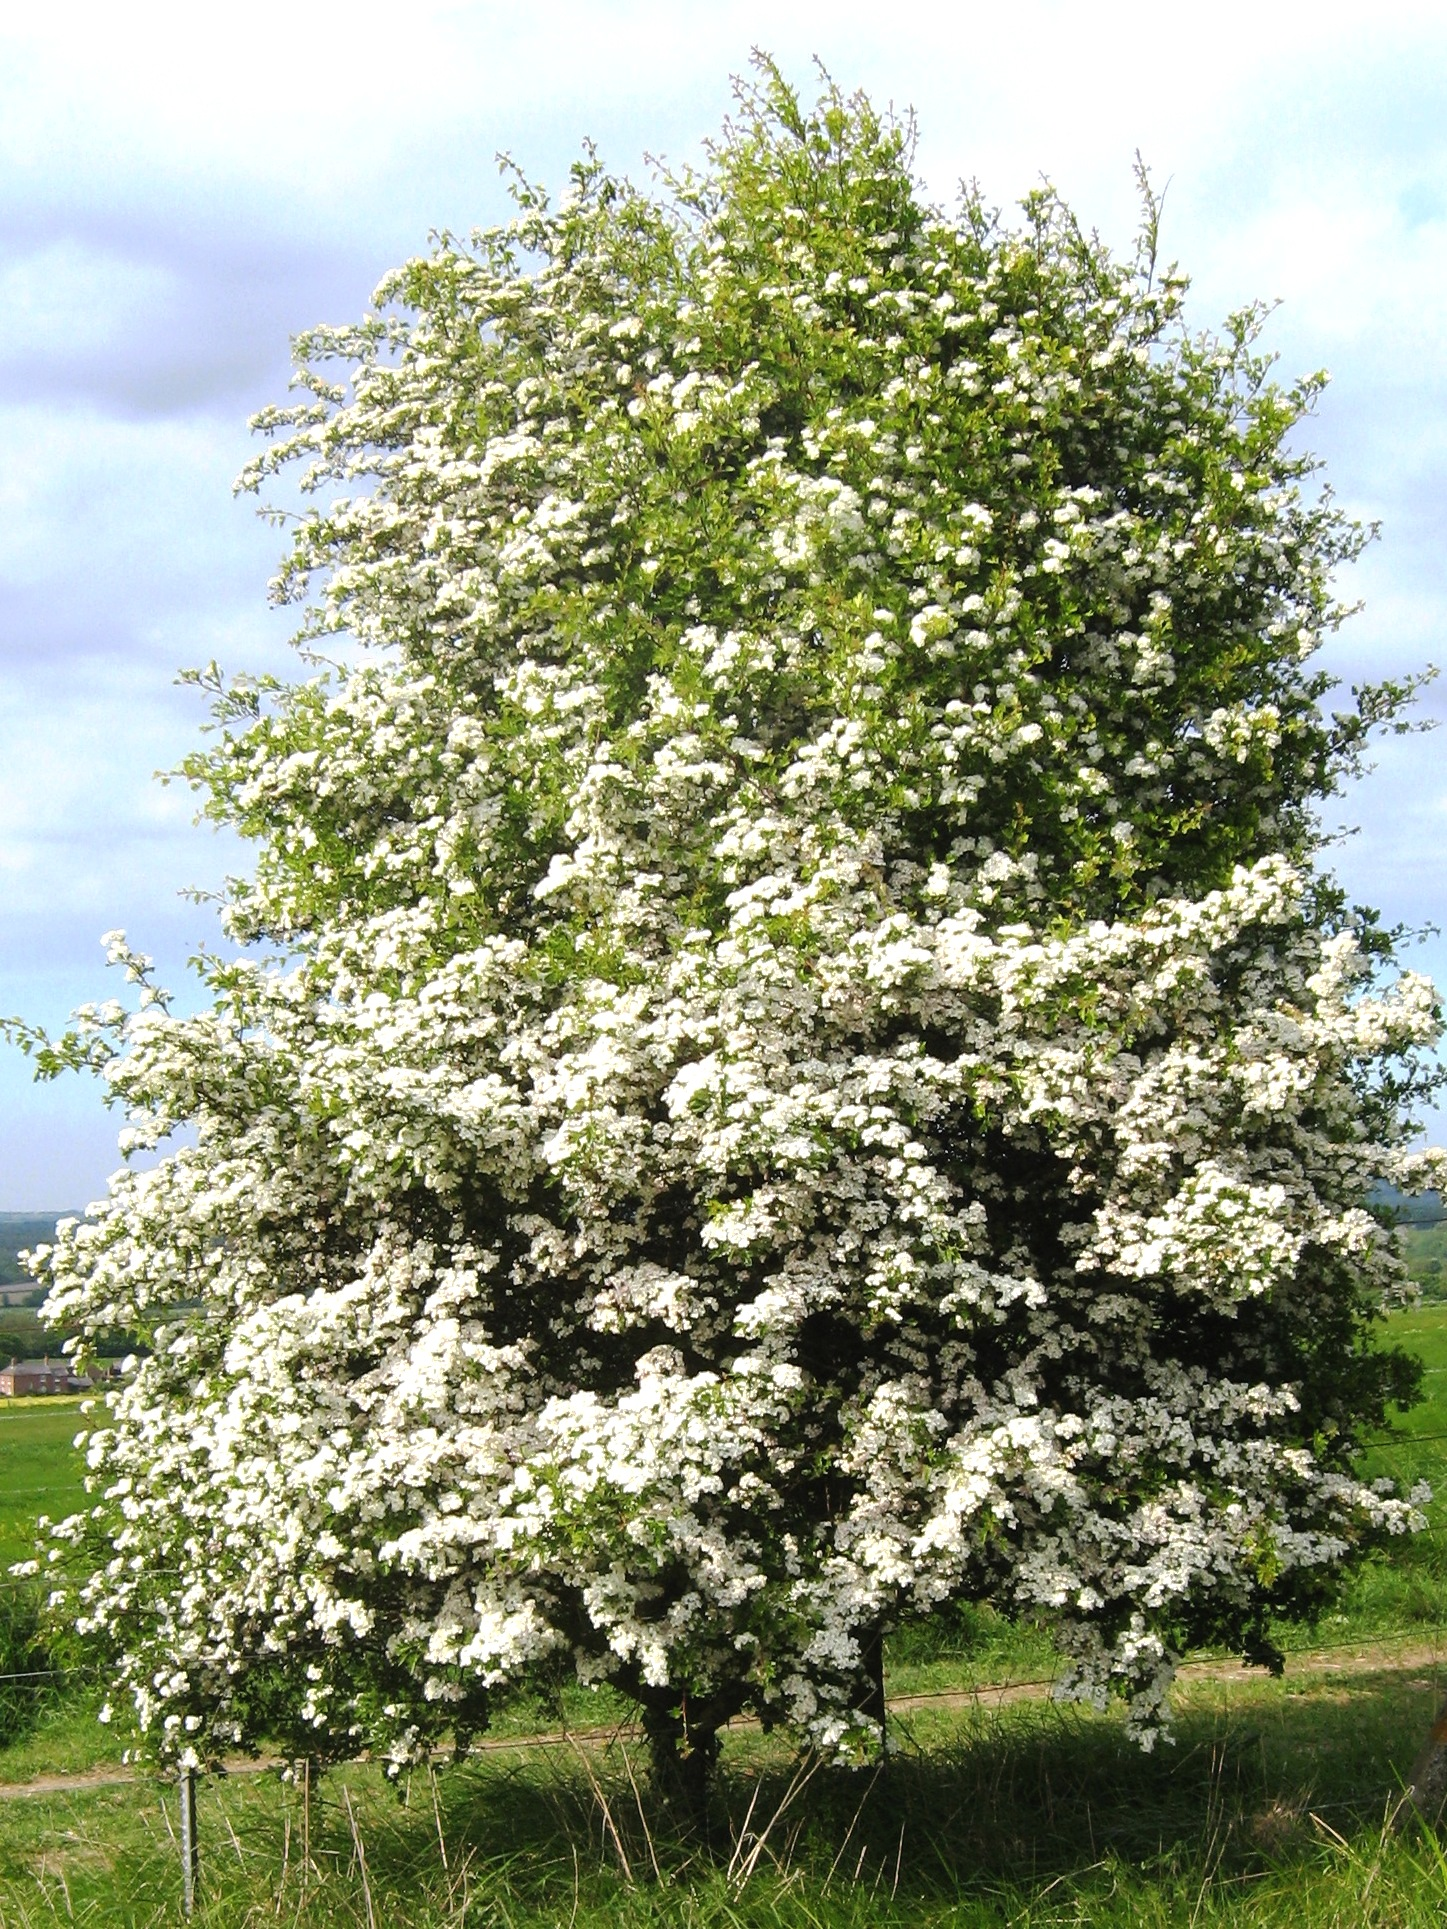 File crataegus monogyna ports wikimedia commons - Piante decorative da giardino ...